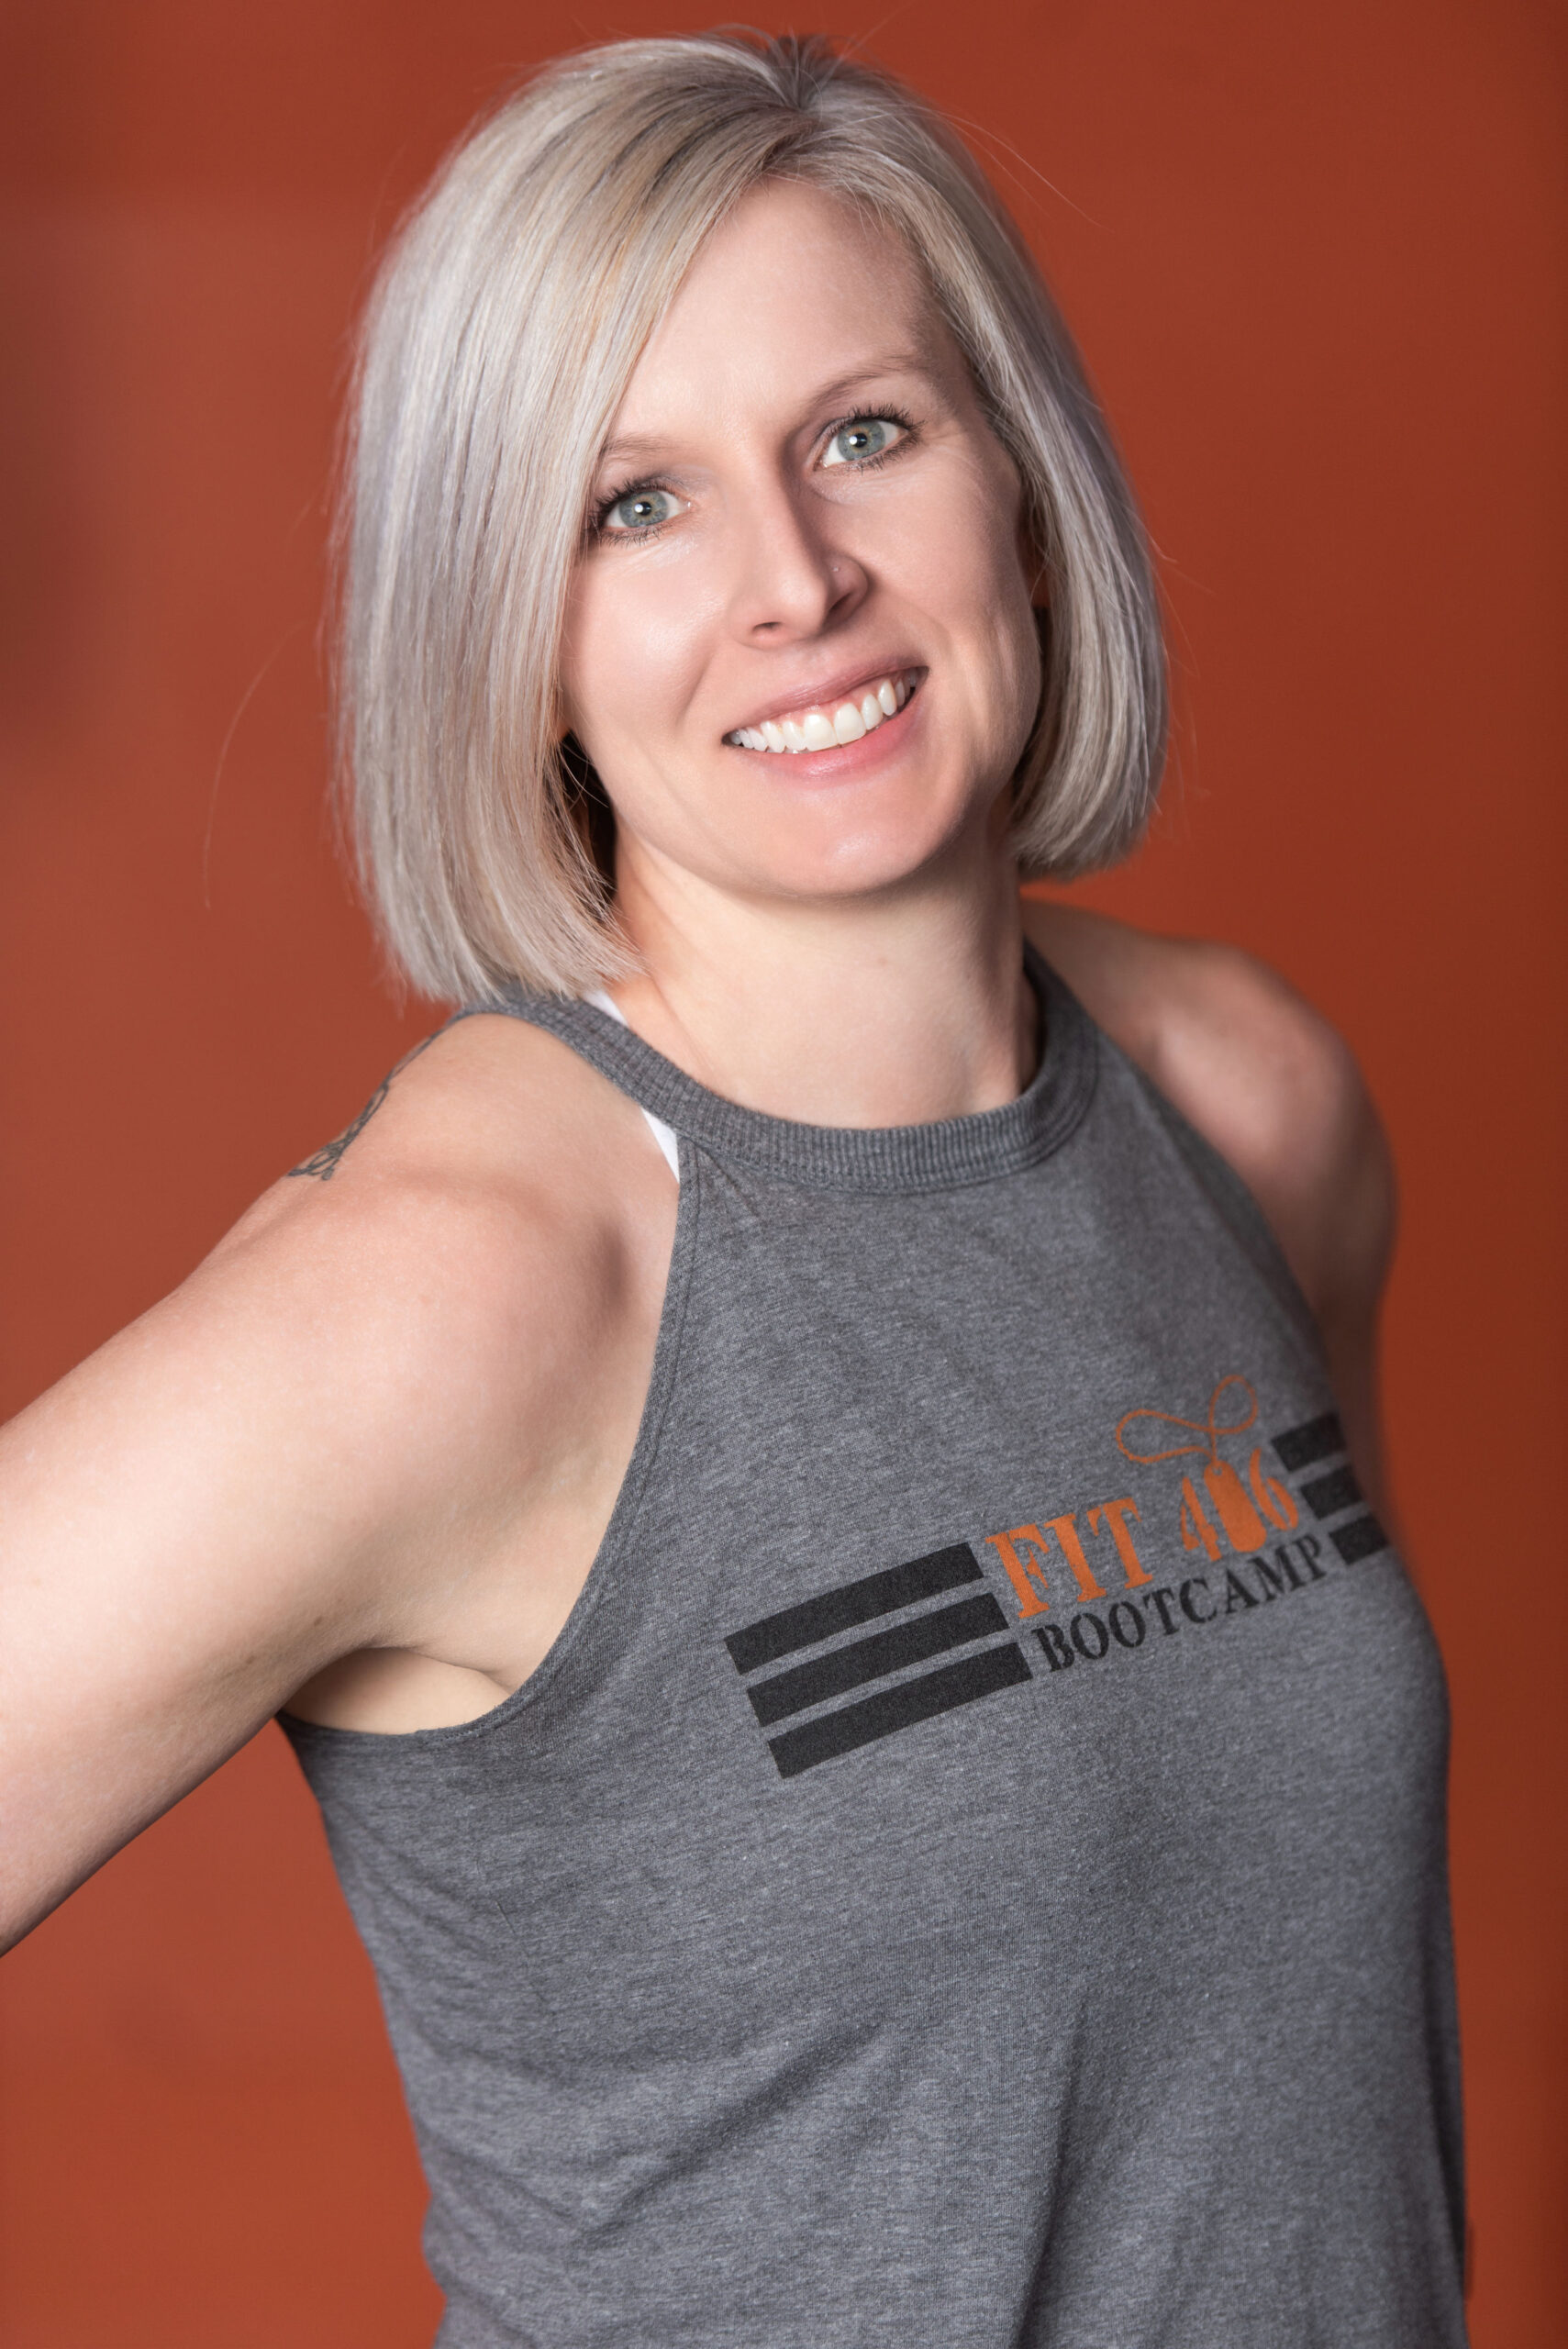 Shelley Pierce Fit406 Billings MT